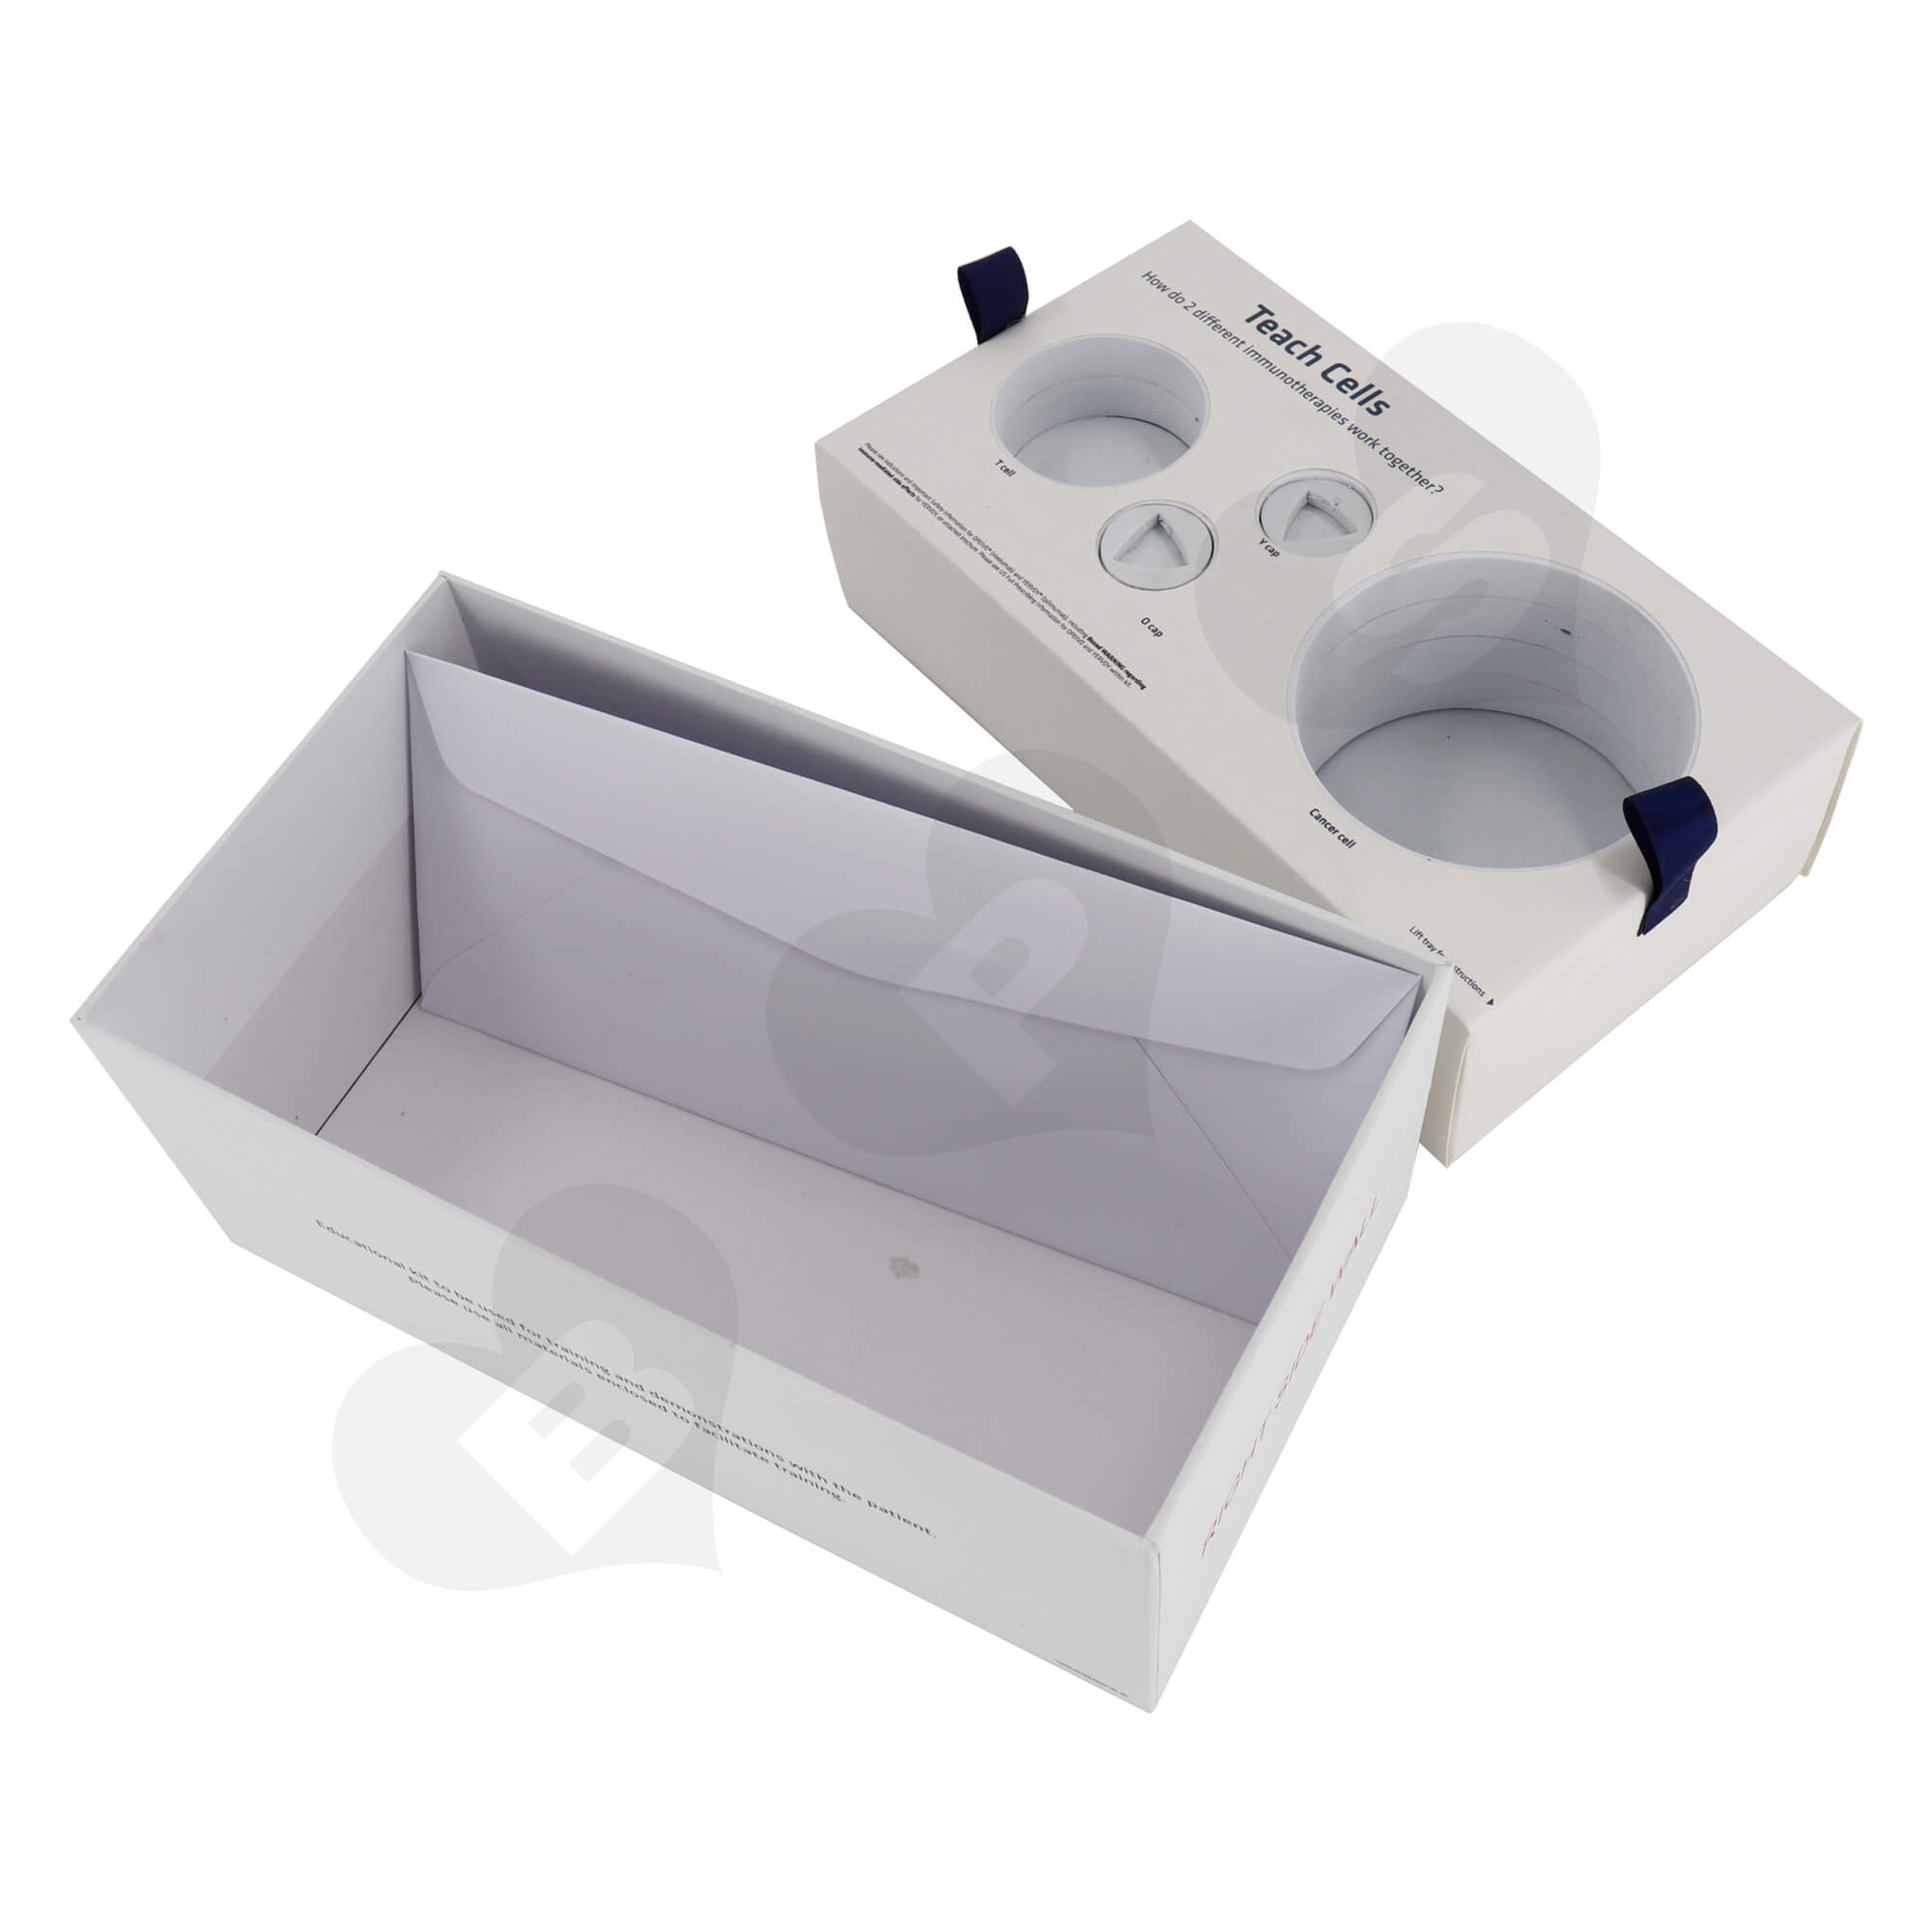 Custom Printed Rigid Cardboard Tray With Plastic Sleeve For Packing Electronic Device Kit Side View Four